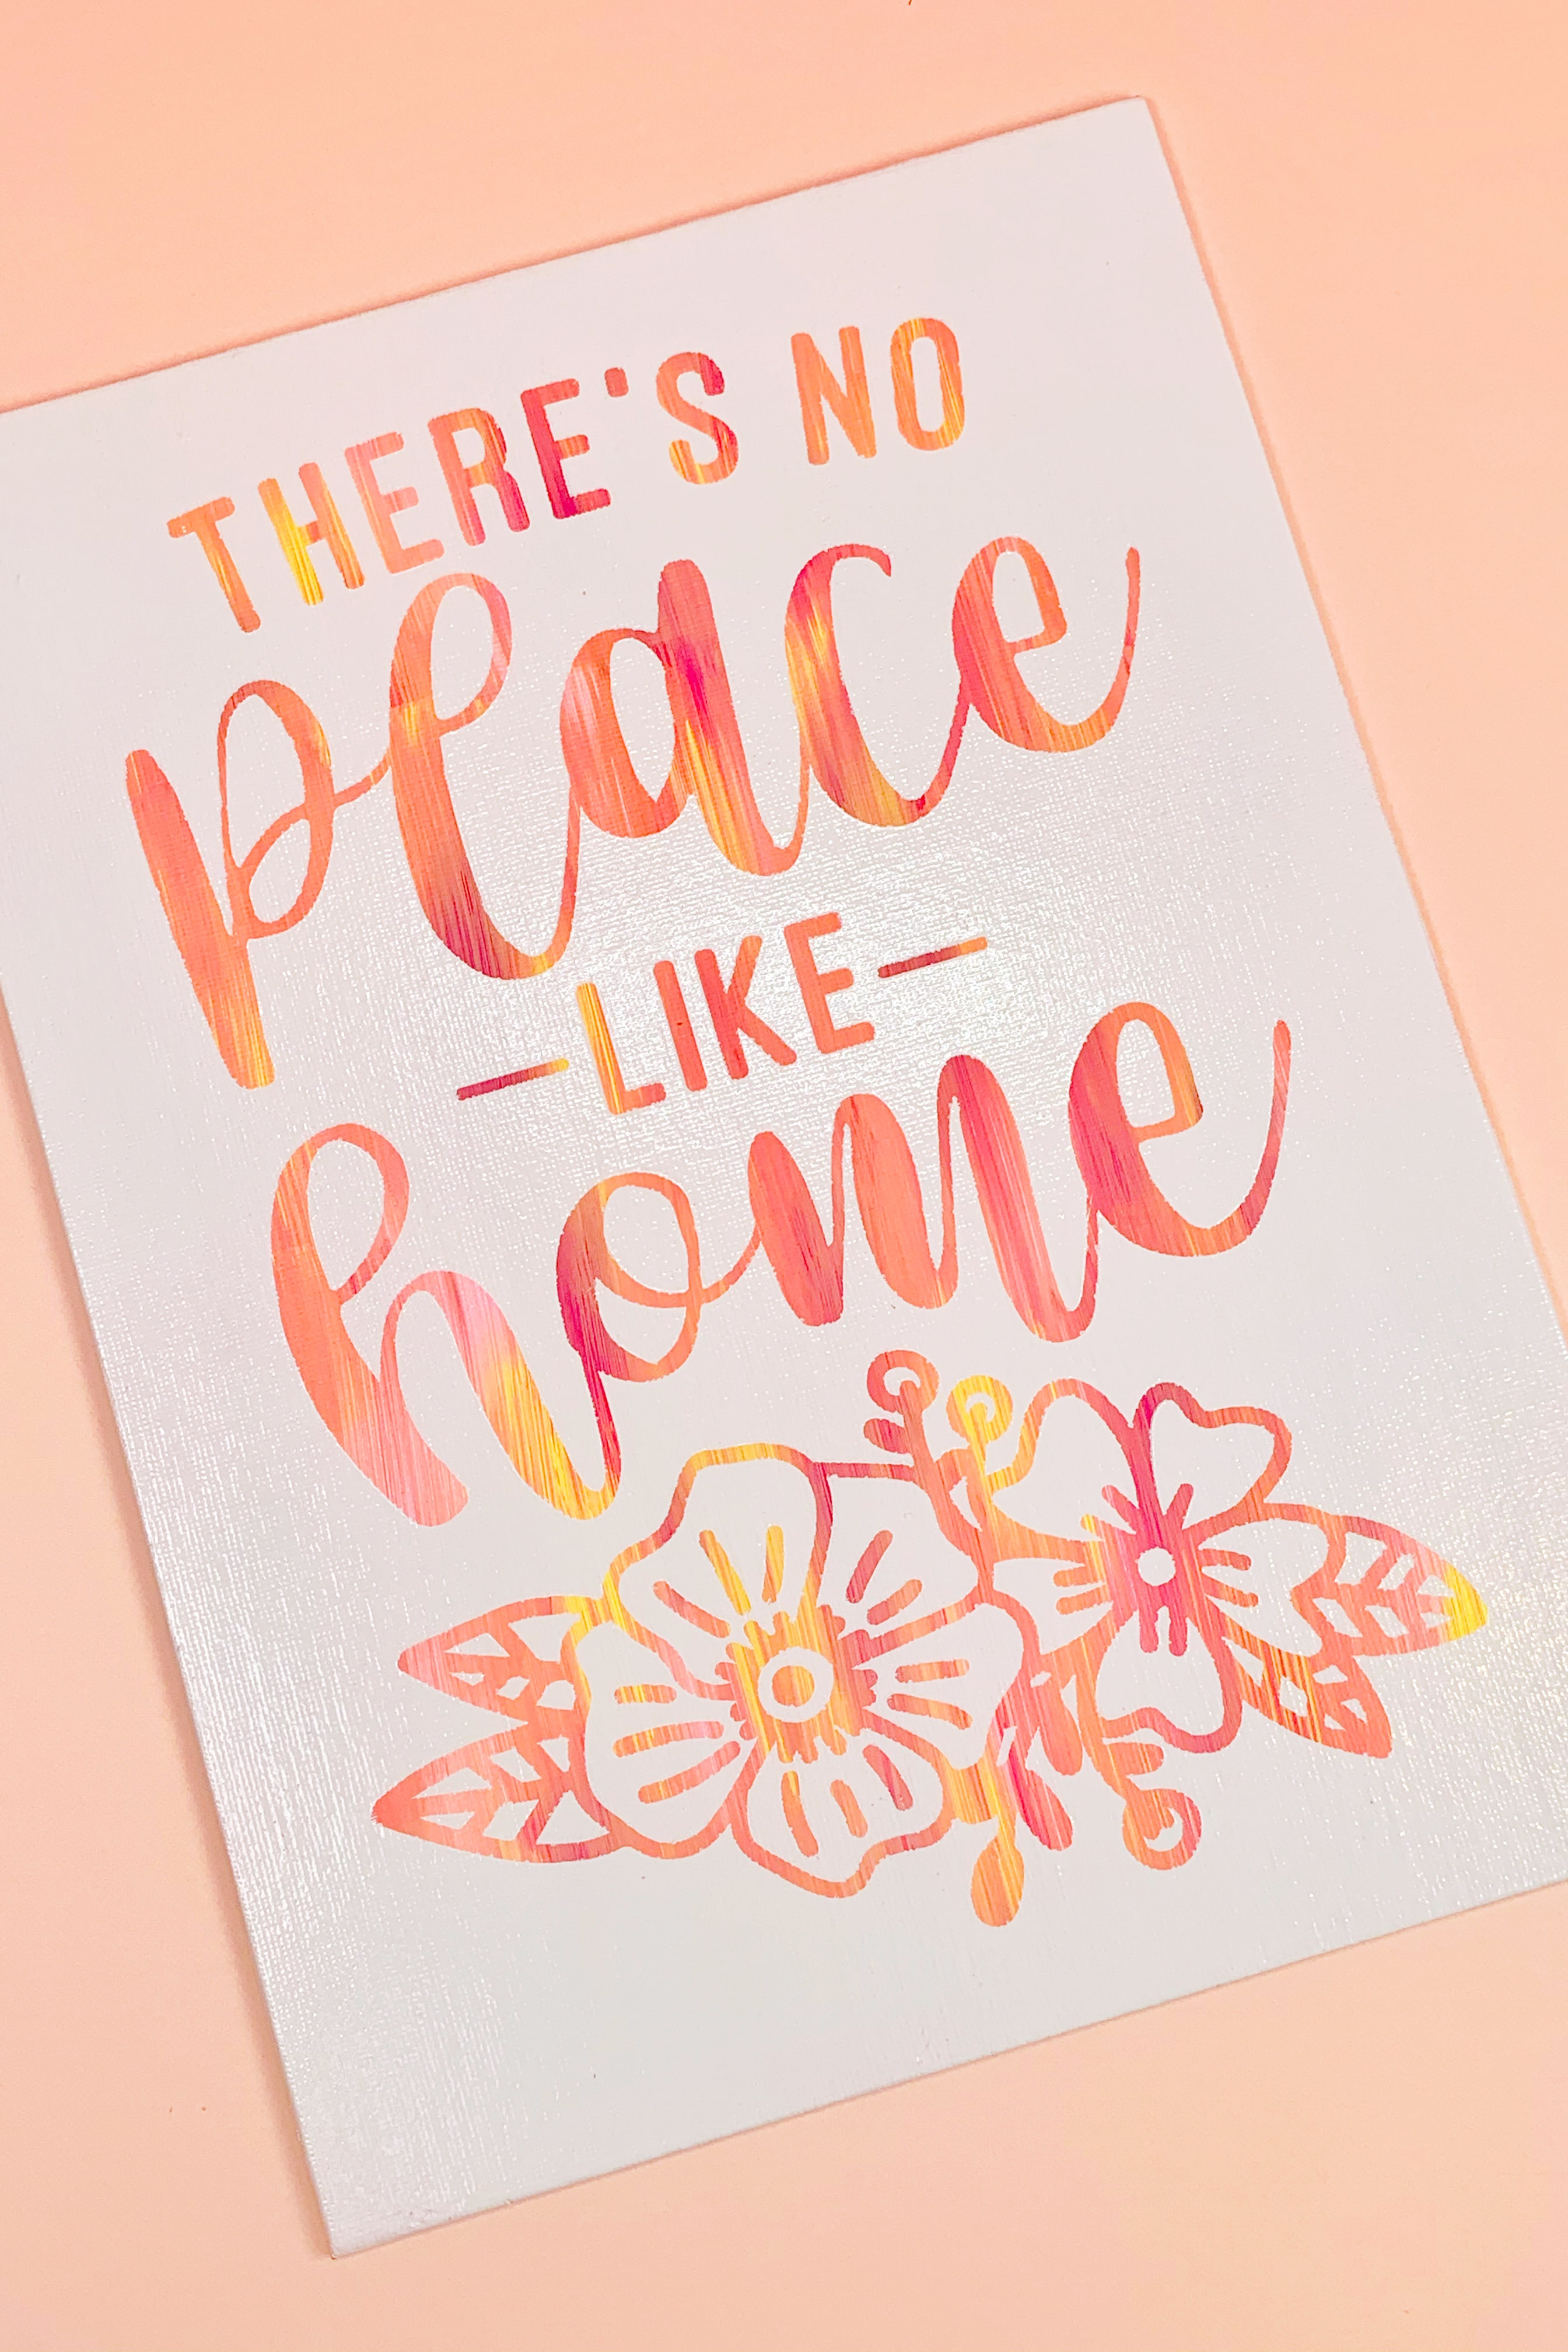 """Completed white hot mess canvas with sunset-hued """"There's No Place Like Home"""" quote"""